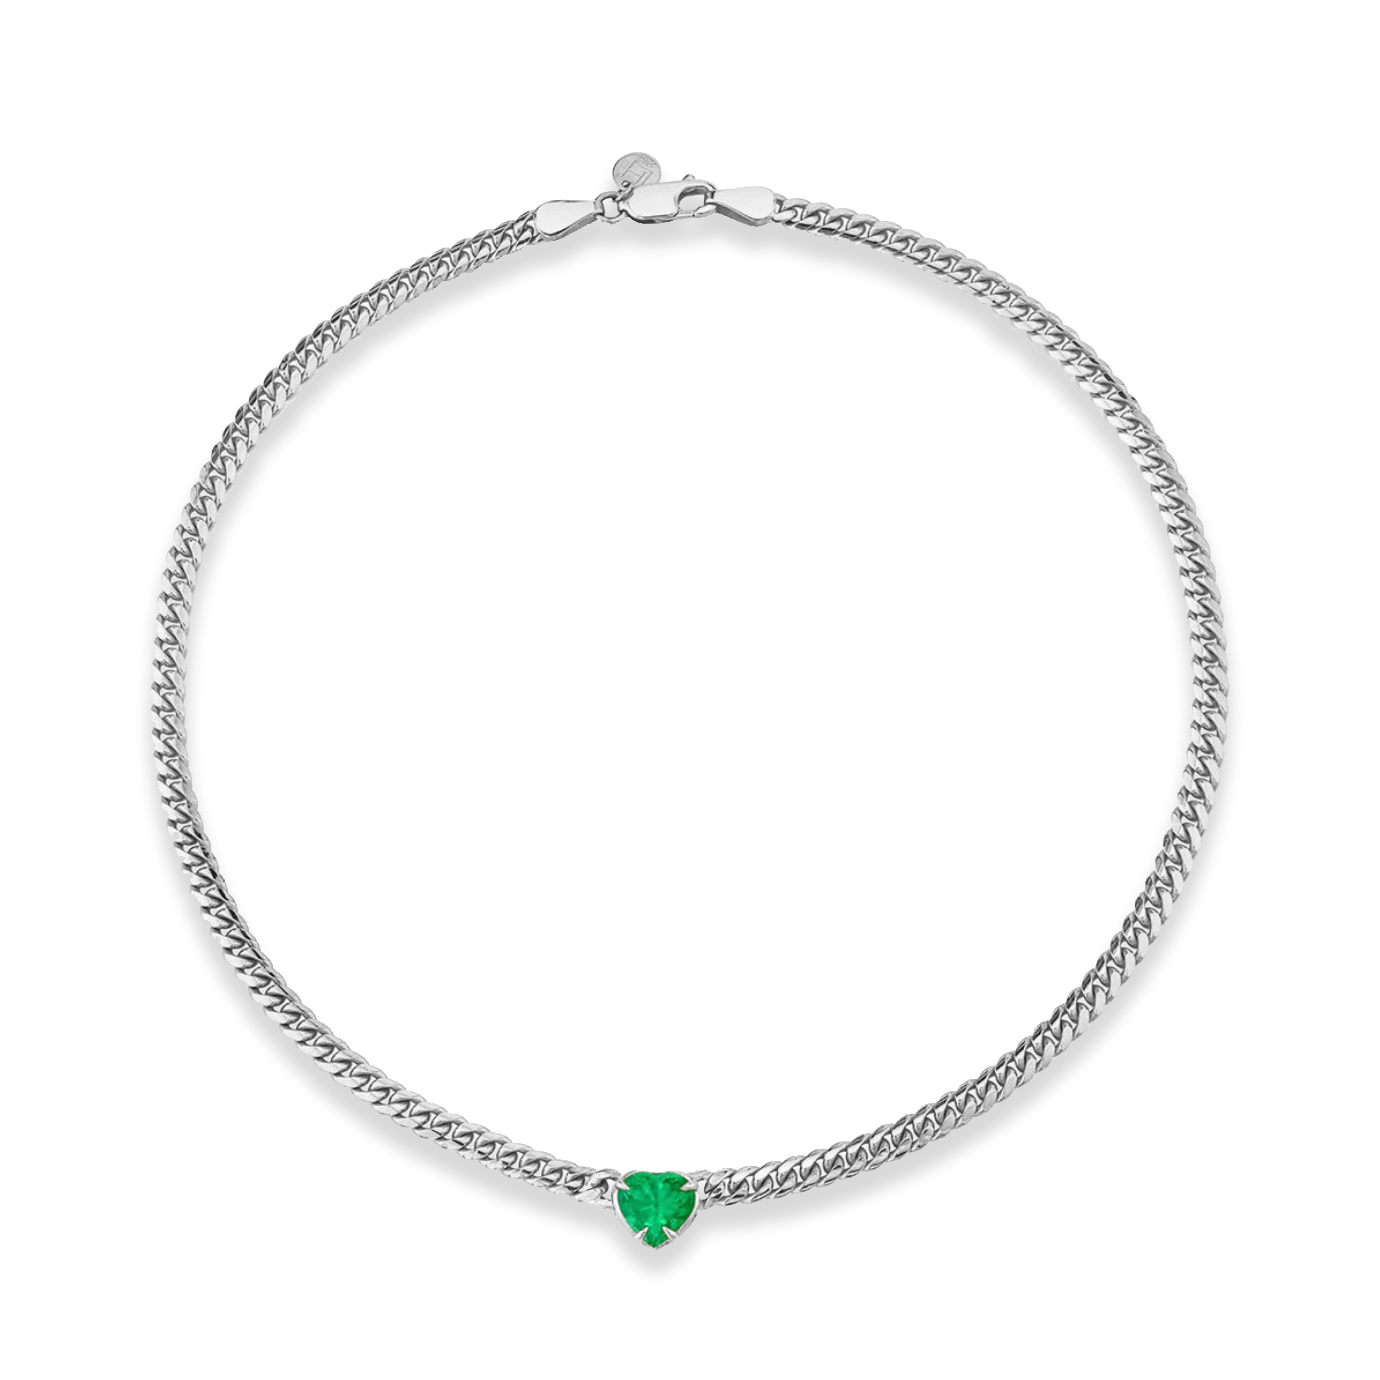 NEW! Queen Emerald Heart Cuban Choker